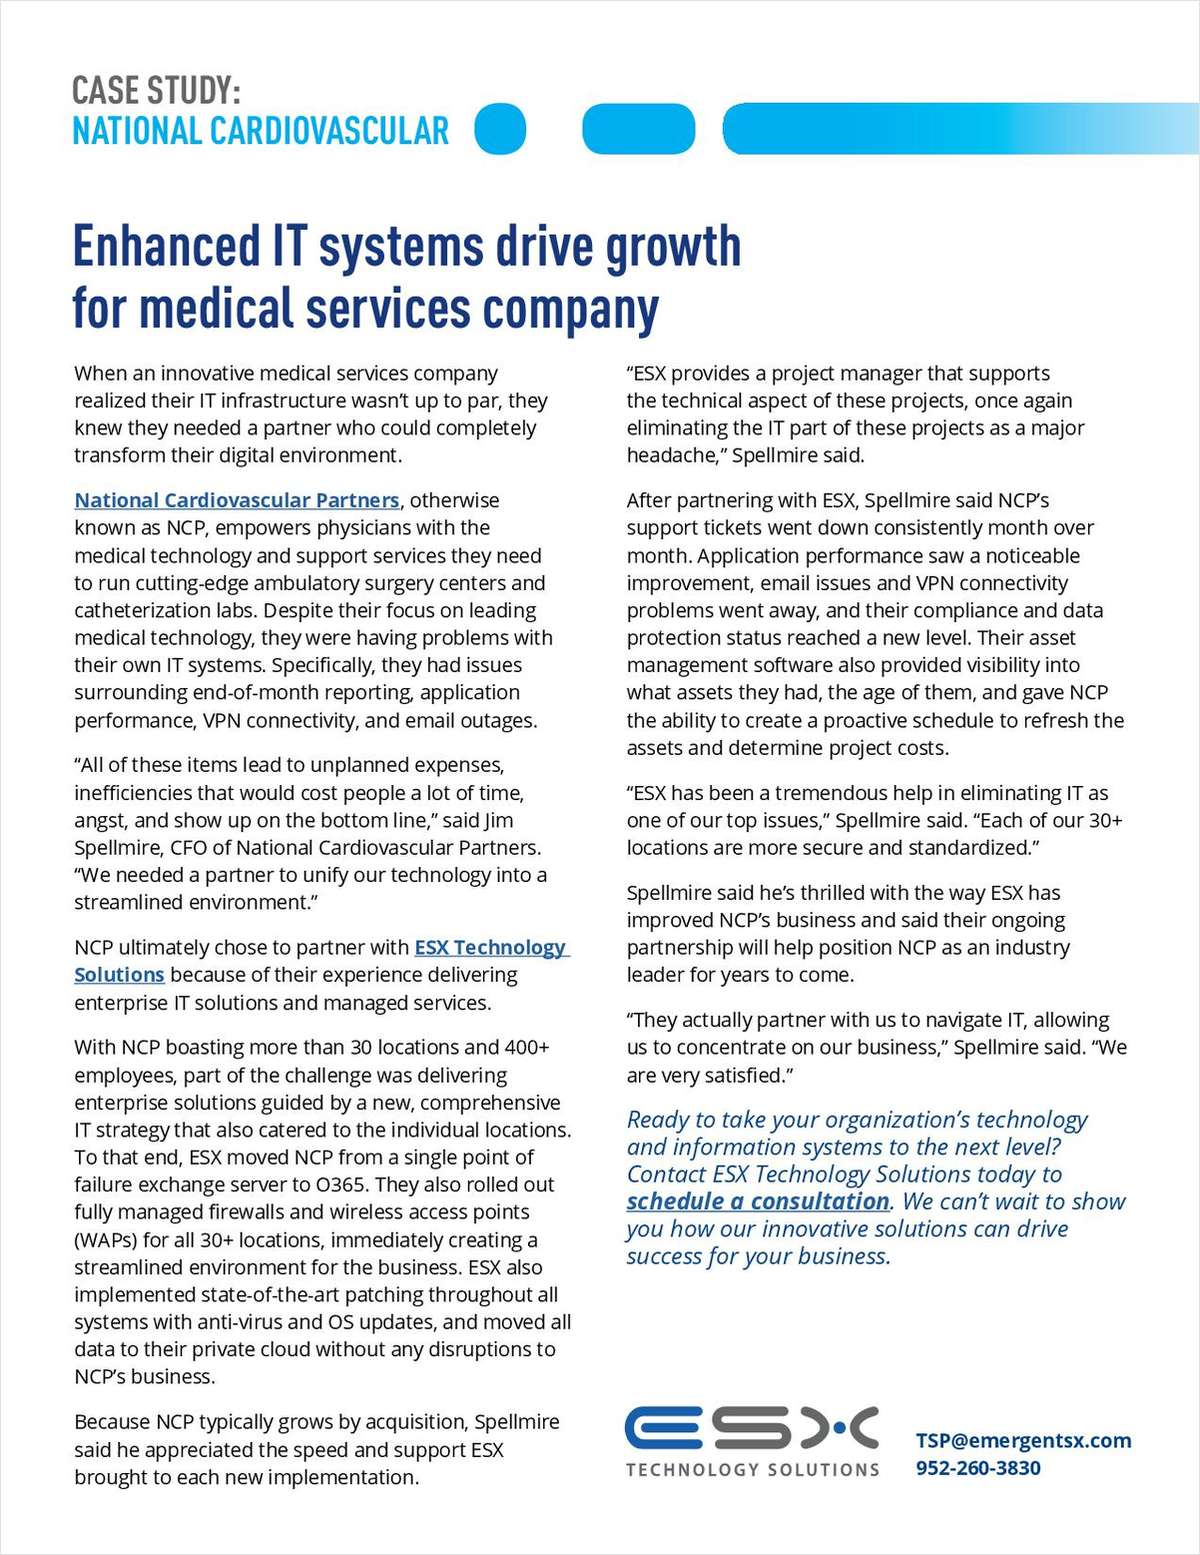 Enhanced IT Systems Drive Growth for Medical Services Company